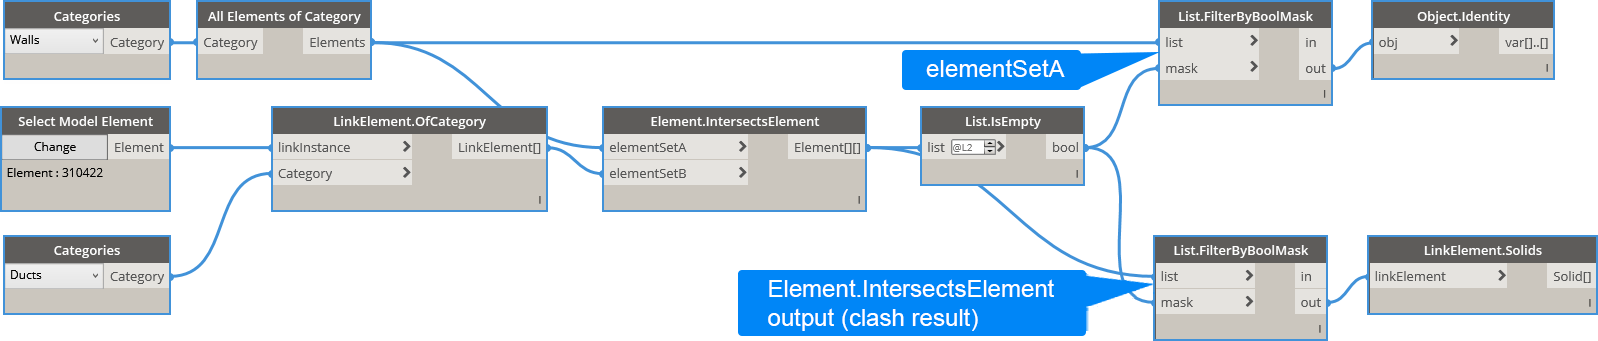 Element-IntersectsElement-Clean-List-Workflow Dereferencing a non-pointer exception BimorphNodes v2.2